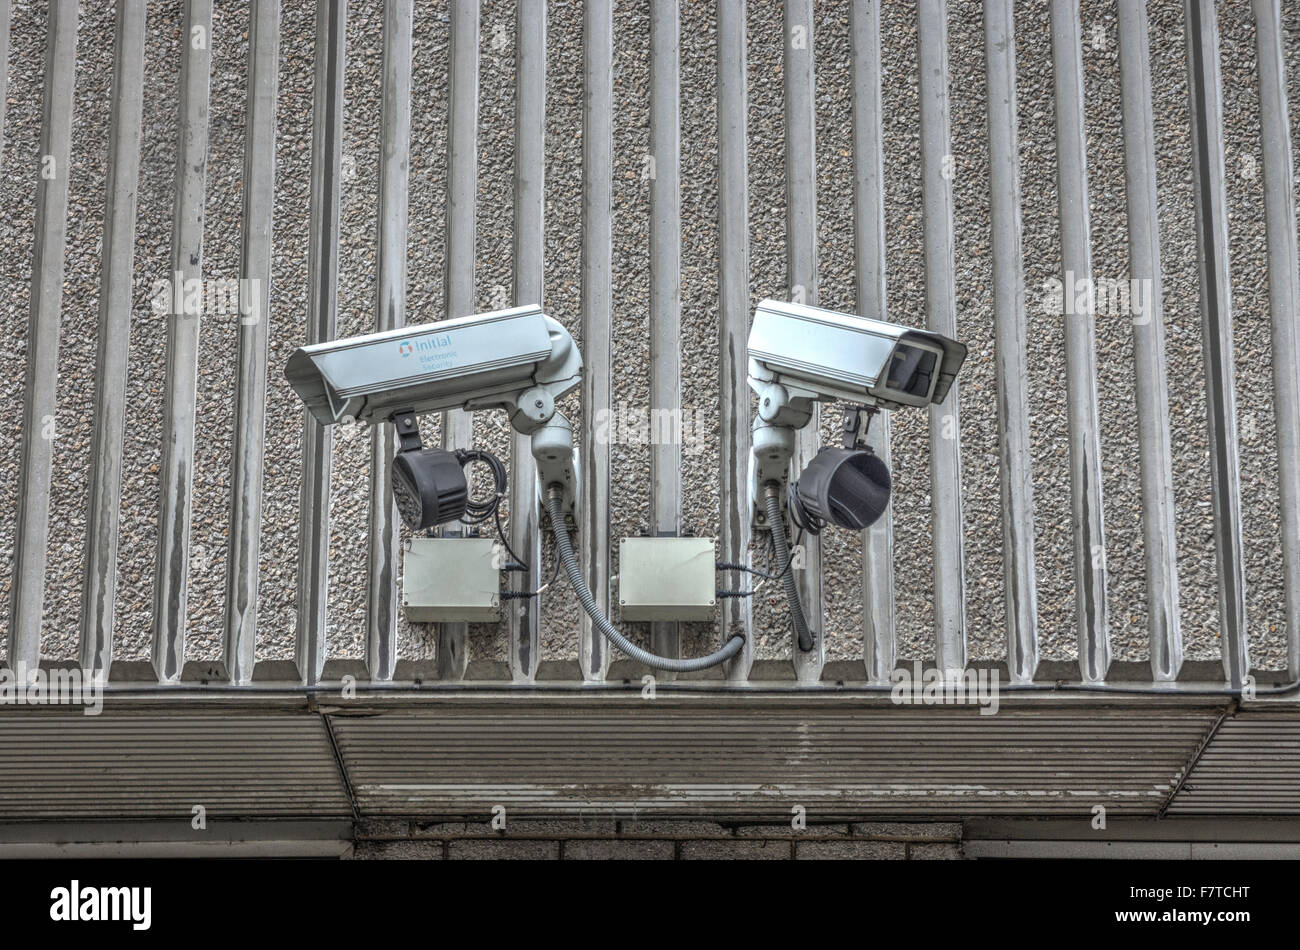 Security Cameras.  CCTV Cameras.  Security TV Cameras  surveillance - Stock Image